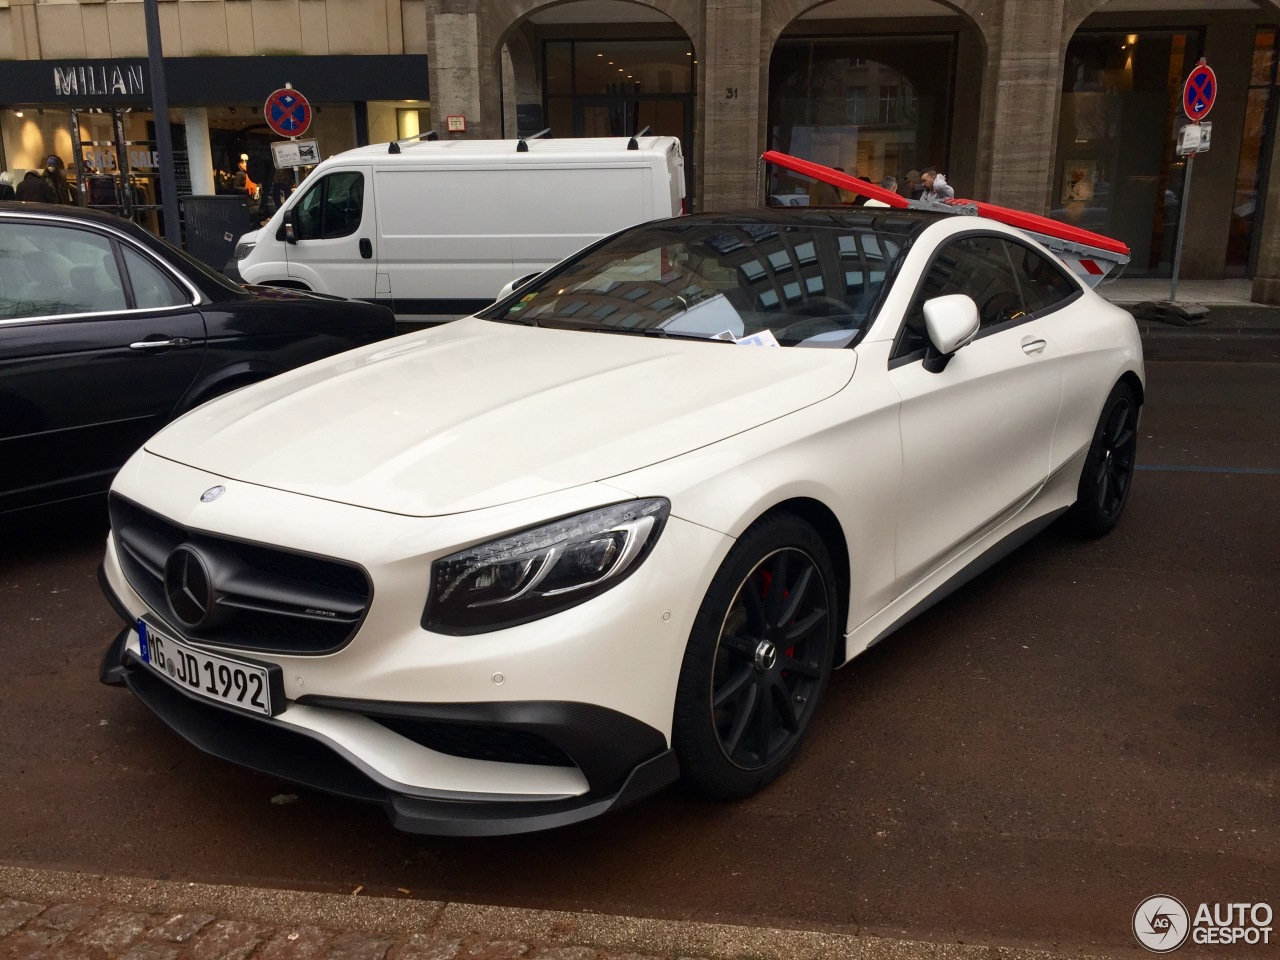 Mercedes benz brabus s b63 650 coupe c217 23 january for Mercedes benz brabus price